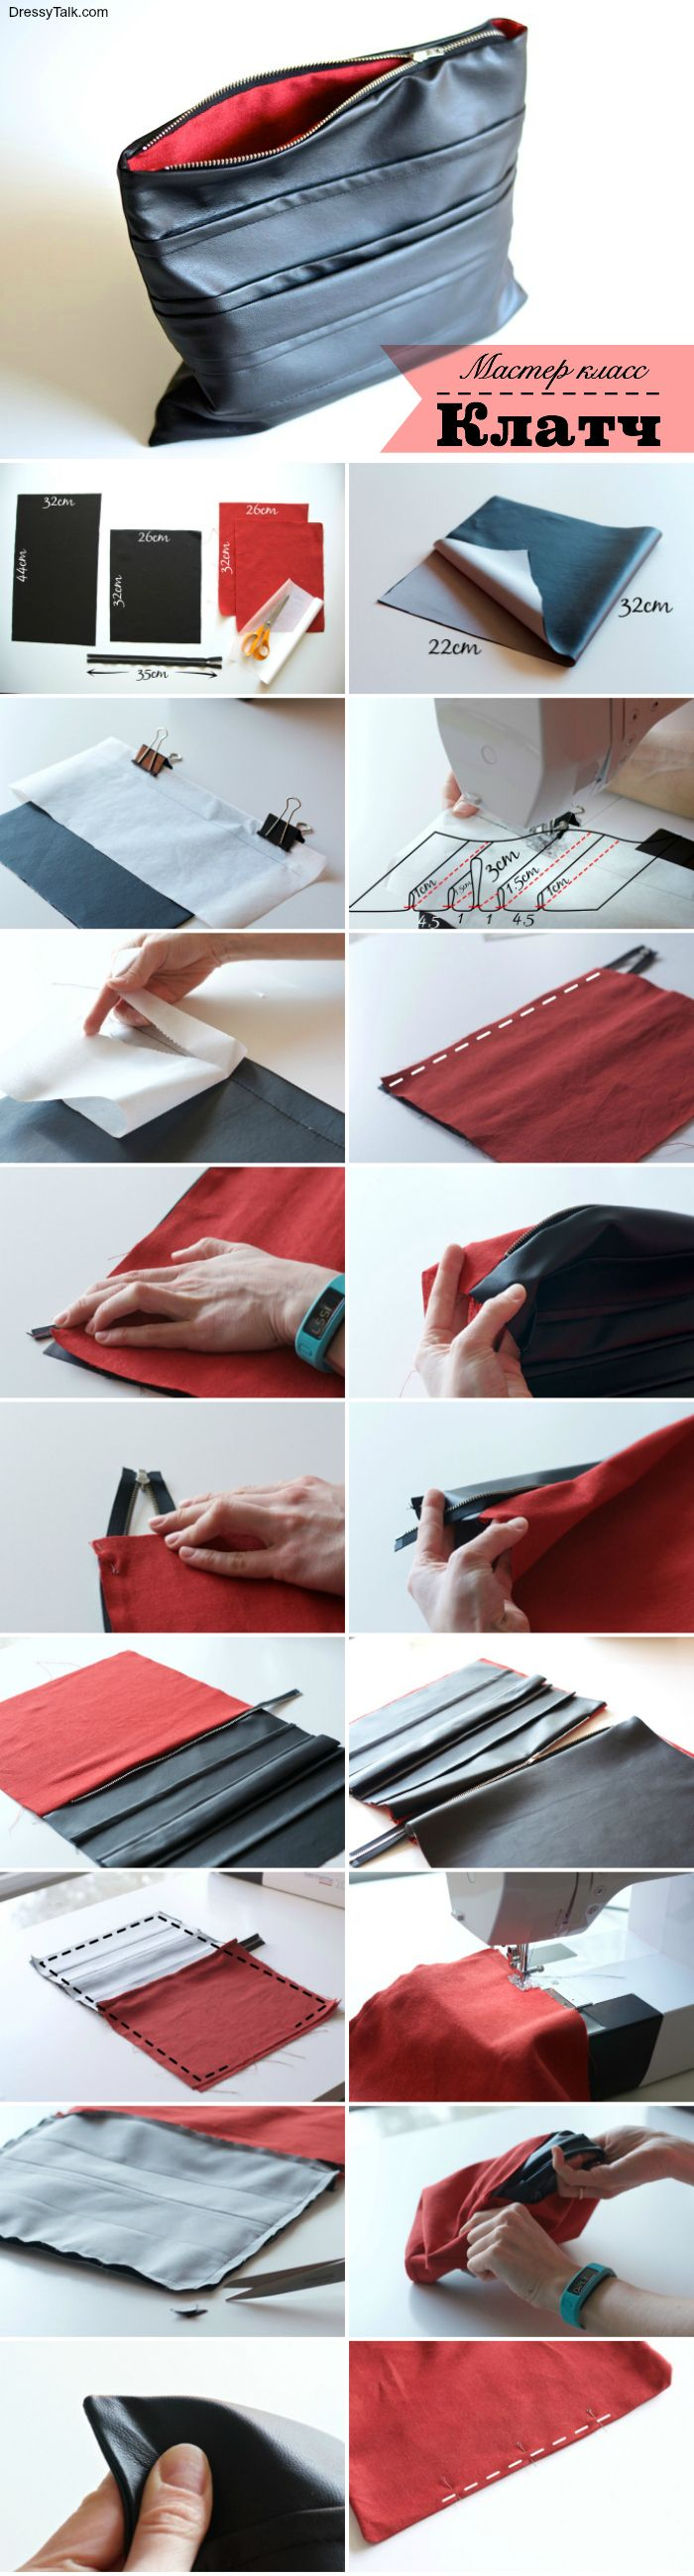 Faux leather clutch sewing tutorial, click through to get tips and tricks for sewing the faux leather